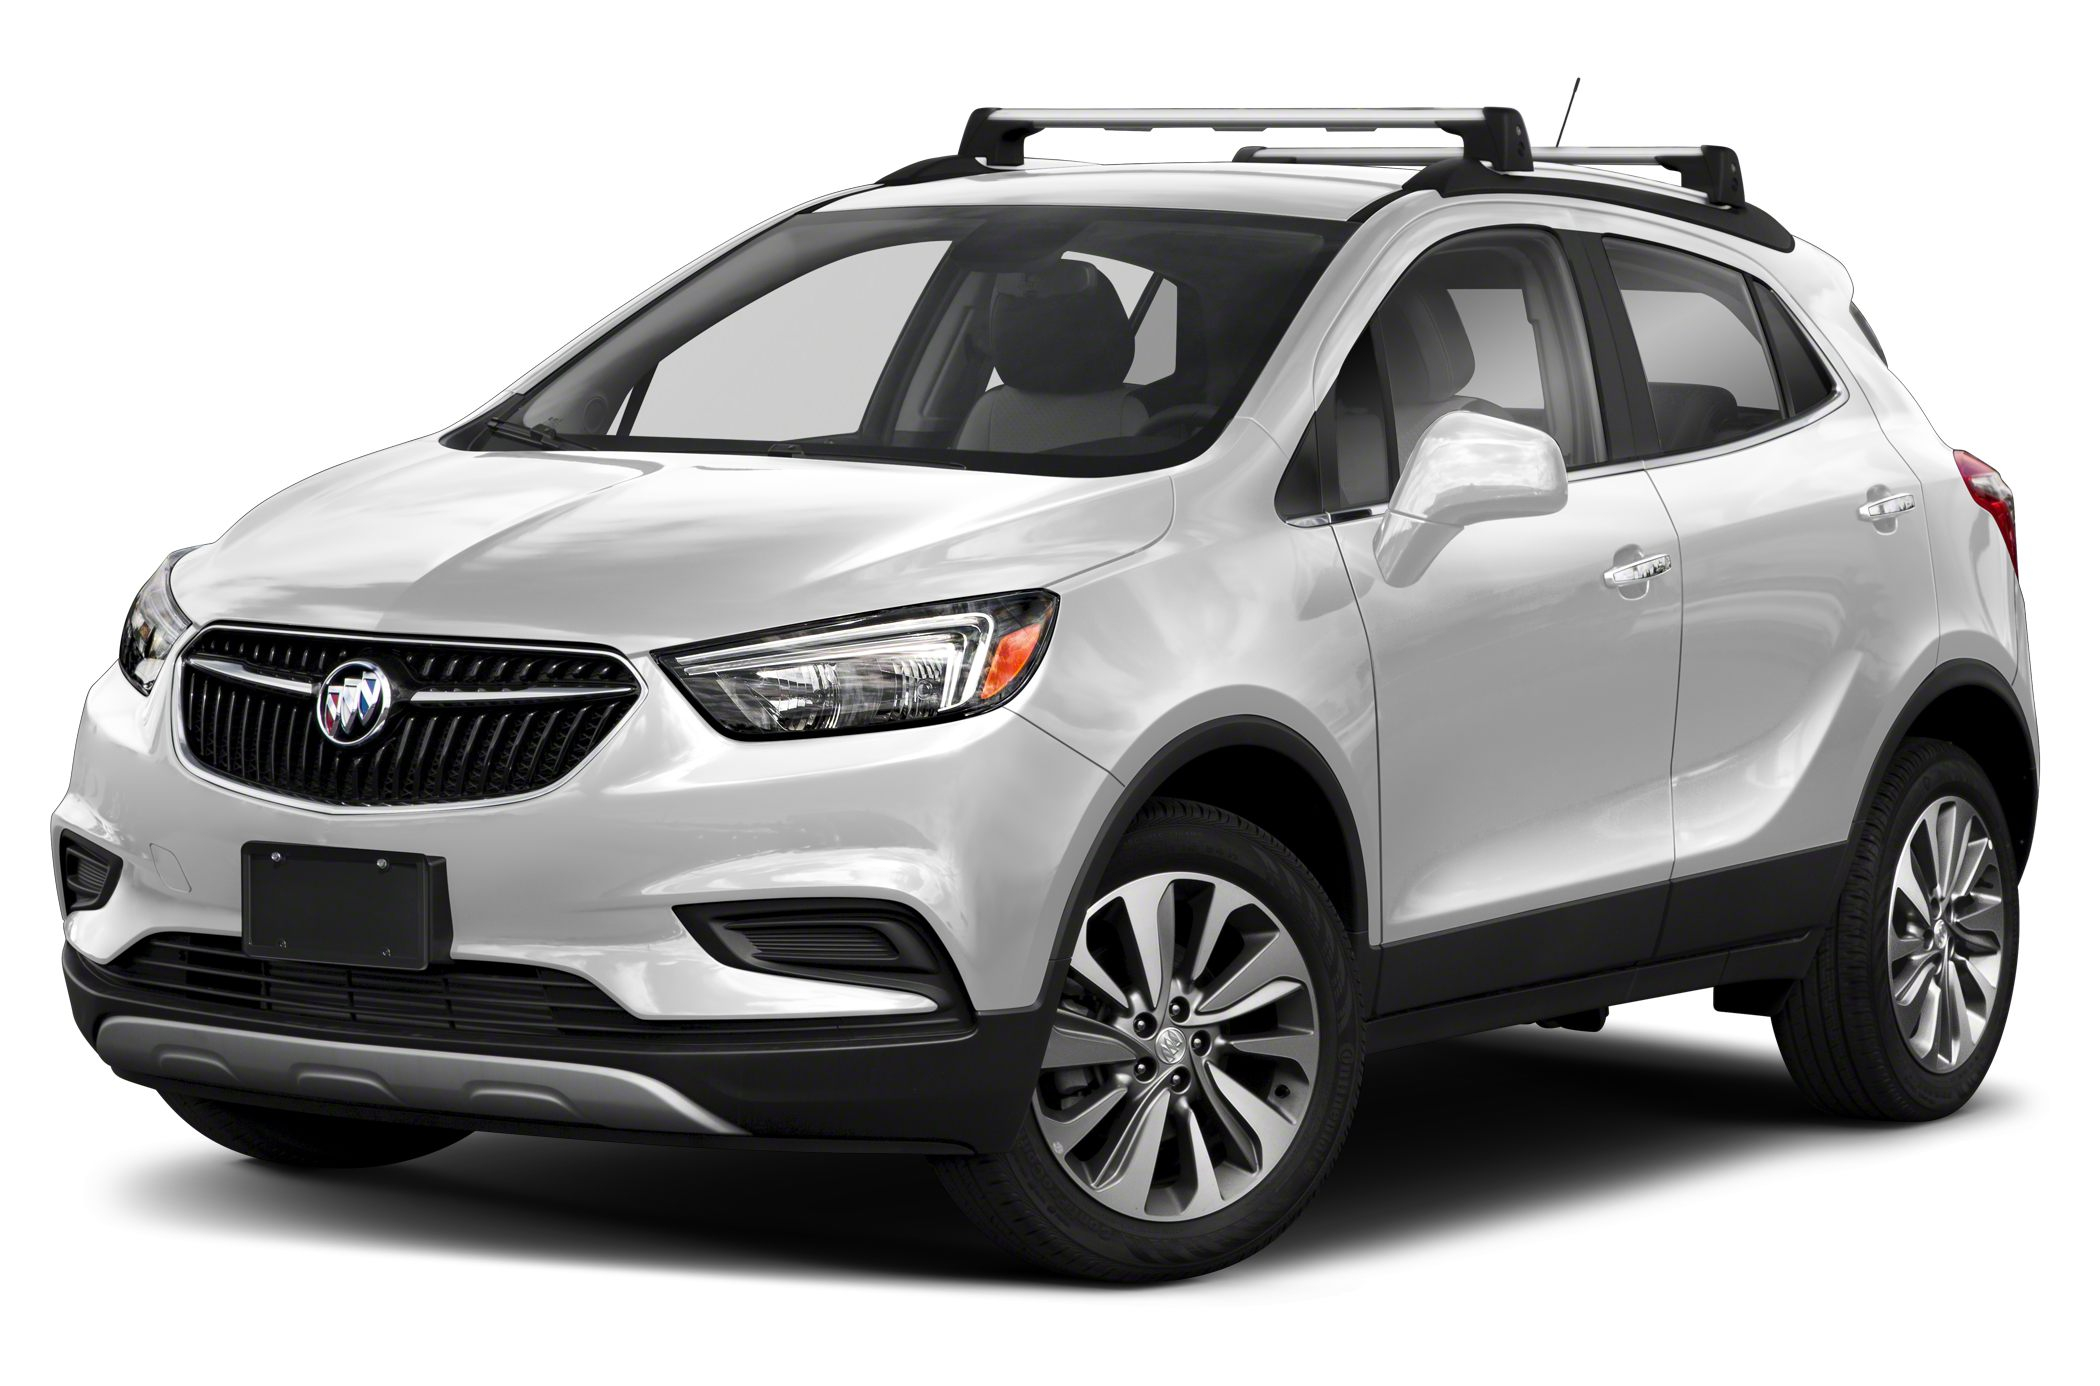 2021 Buick Encore Videos What Does A 2021 Buick Encore Cost